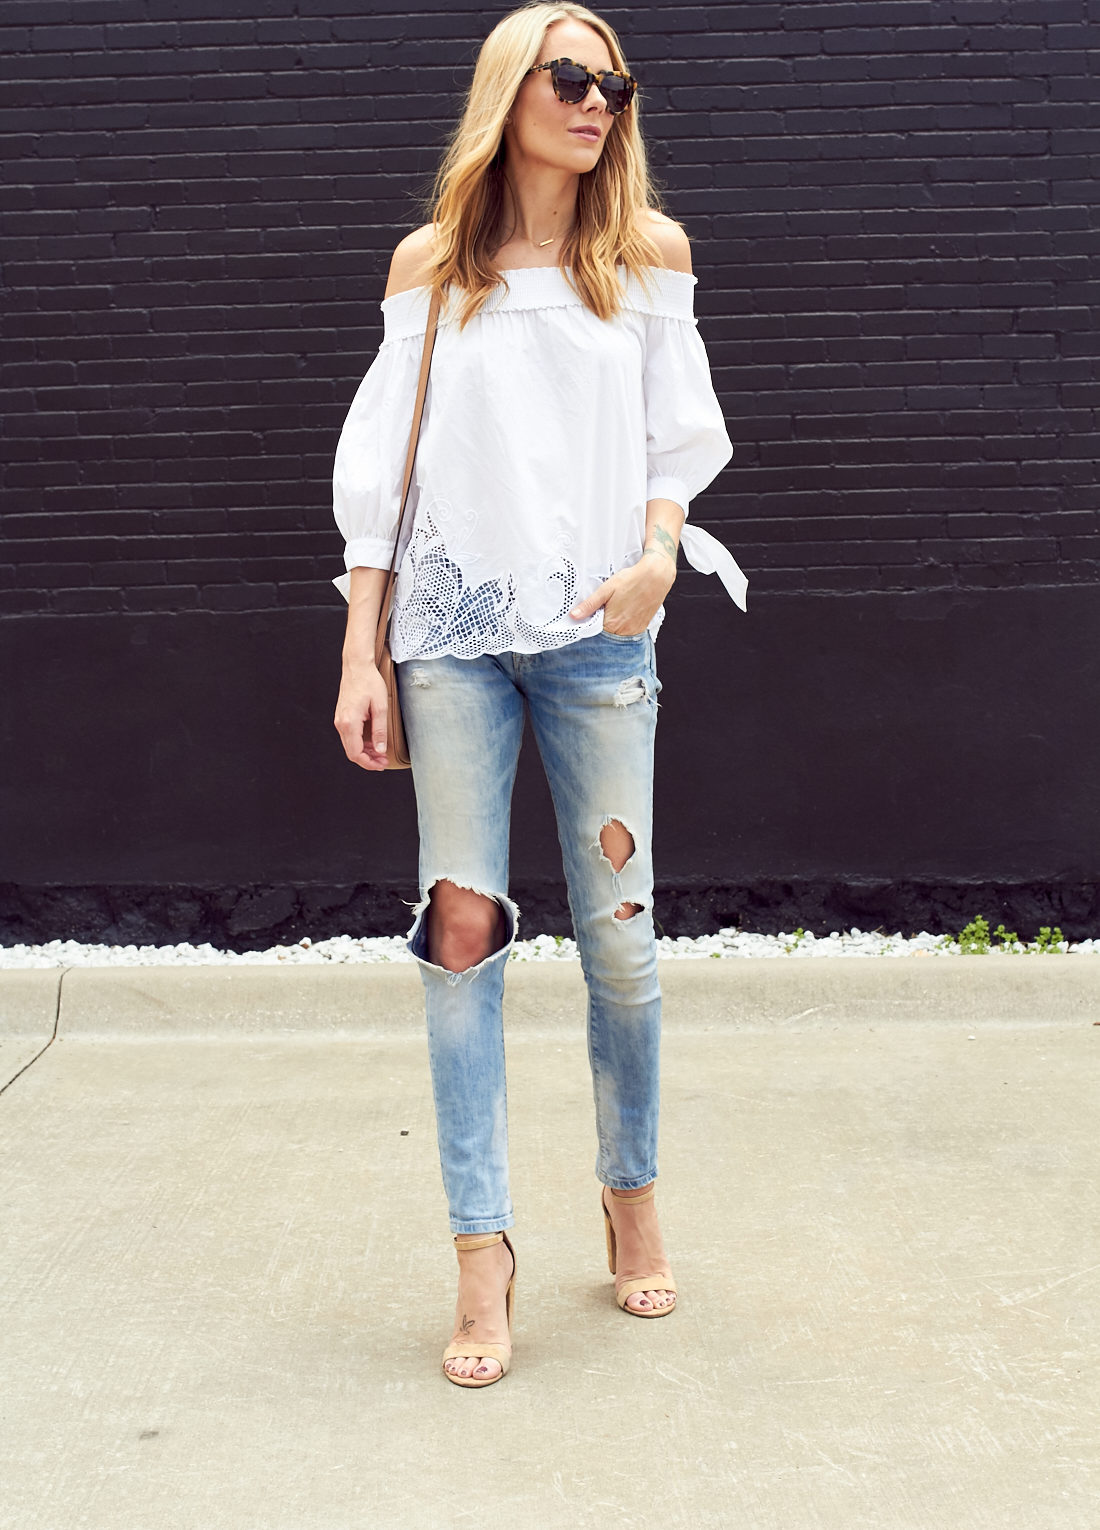 fashion-jackson-white-off-the-shoulder-cutout-top-denim-ripped-jeans-nude-ankle-strap-heels